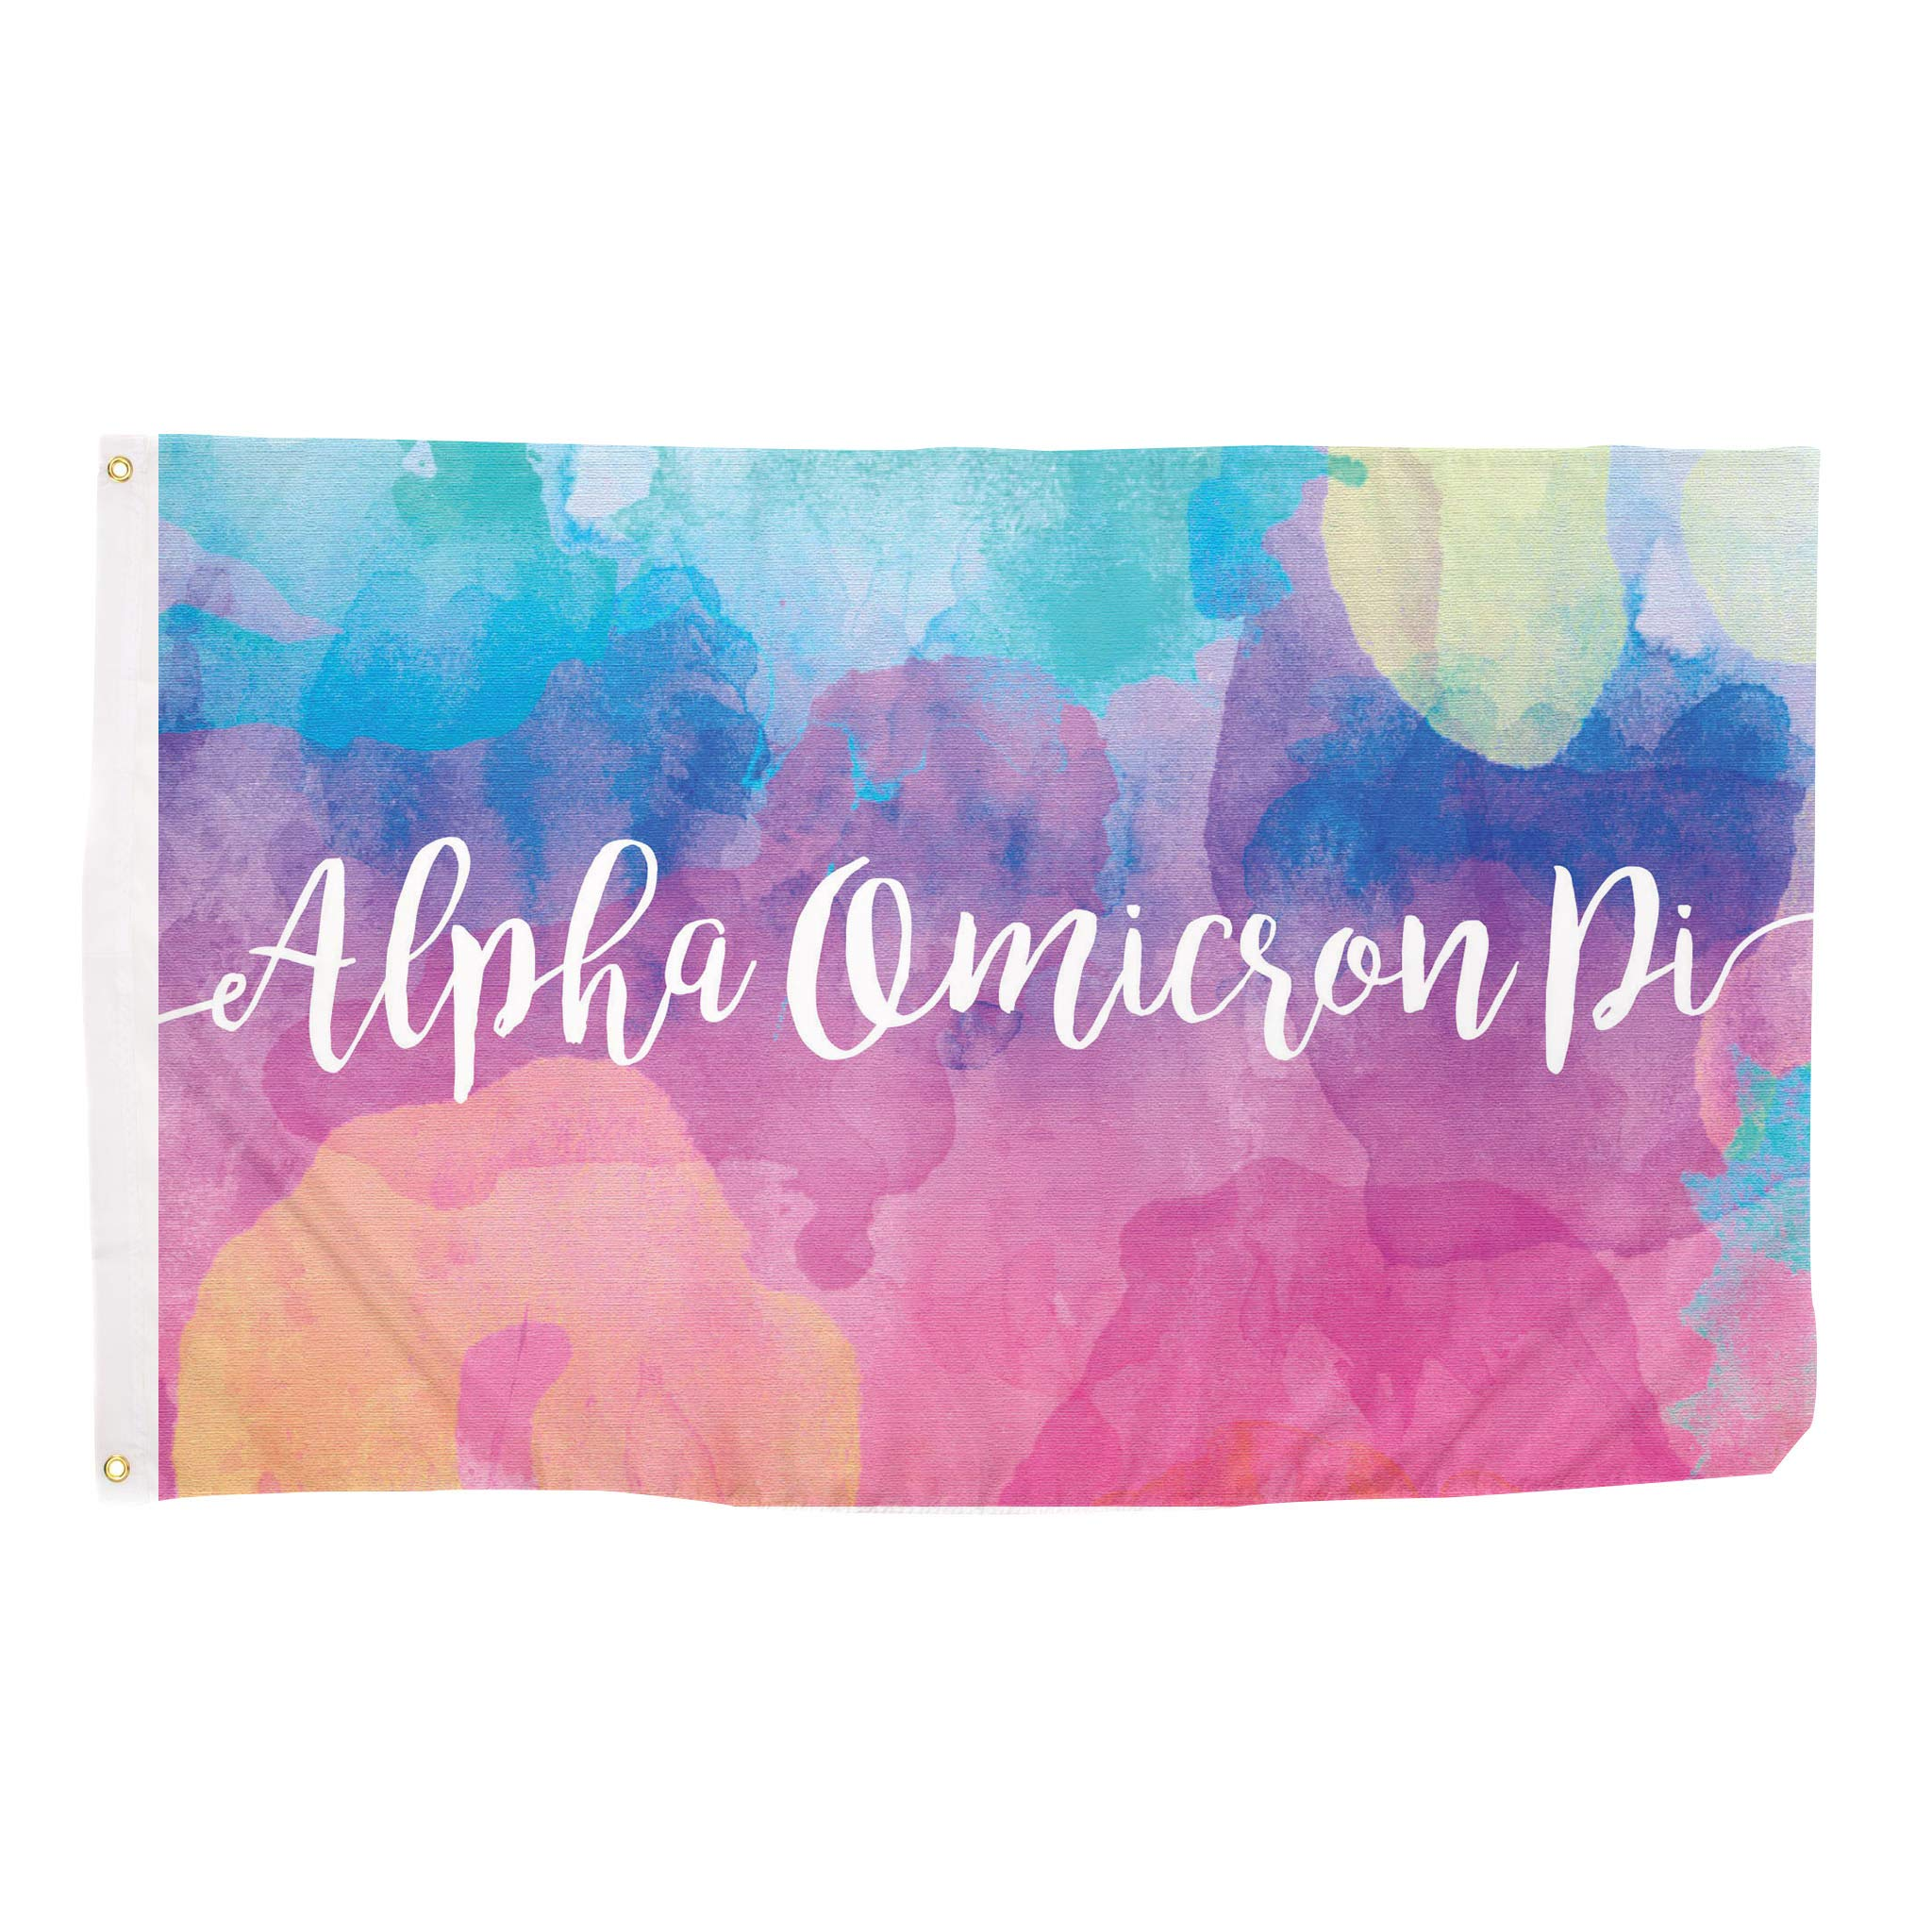 Alpha Omicron Pi Water Color Sorority Flag Greek Letter Use as a Banner Large 3 x 5 Feet Sign Decor AOII by Desert Cactus